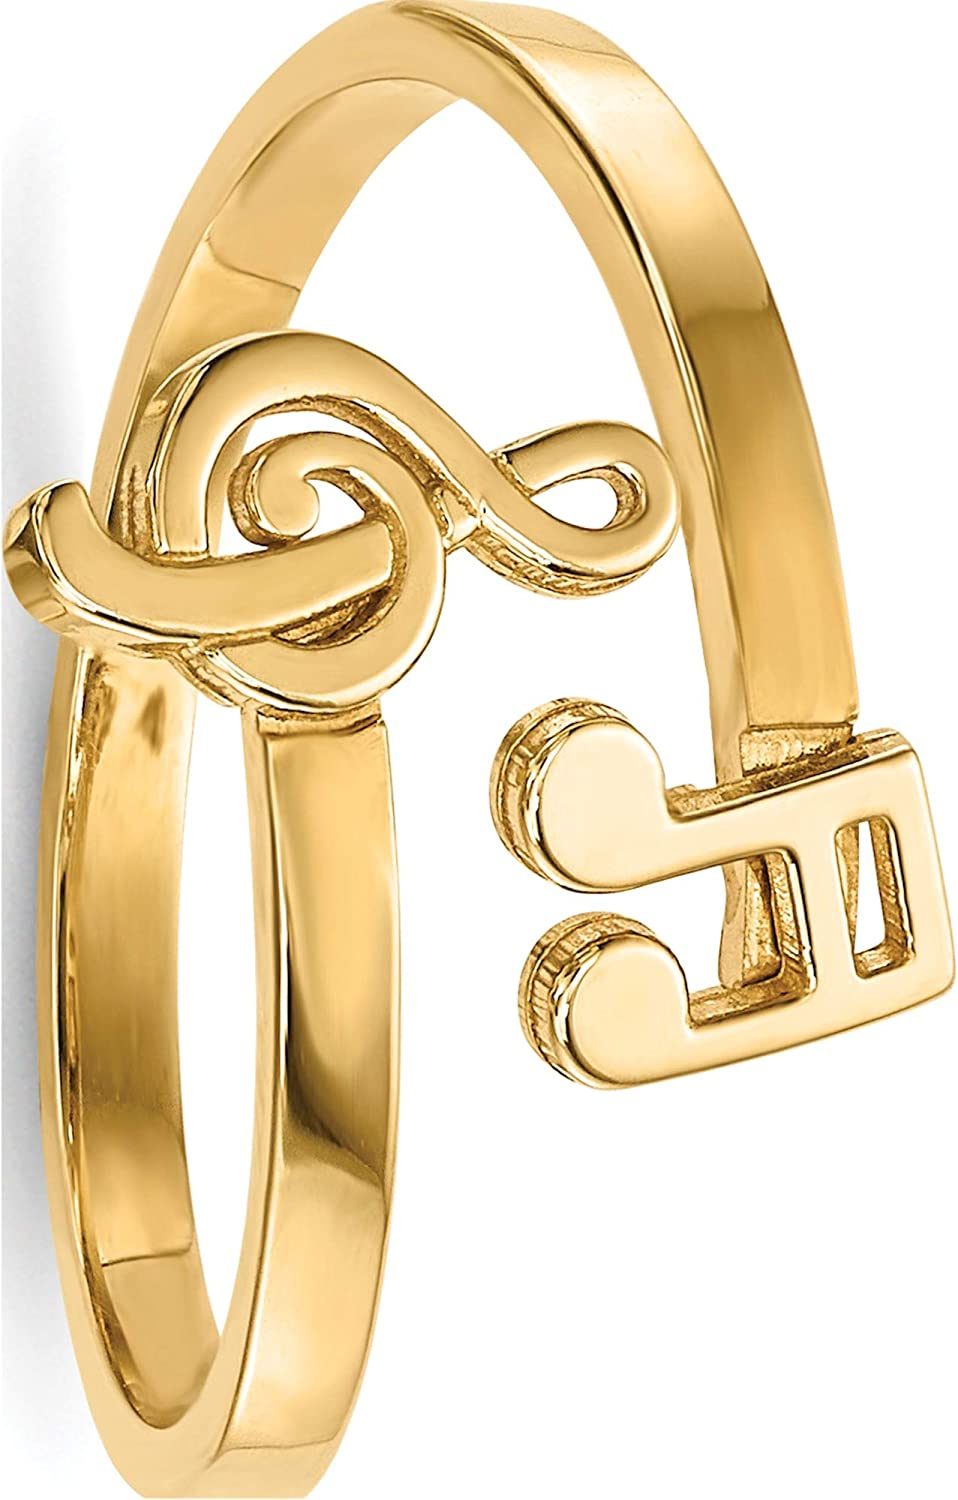 14K Yellow Gold Polished Music Notes Sw - Large-scale Oakland Mall sale Bypass Ring Jewelry By